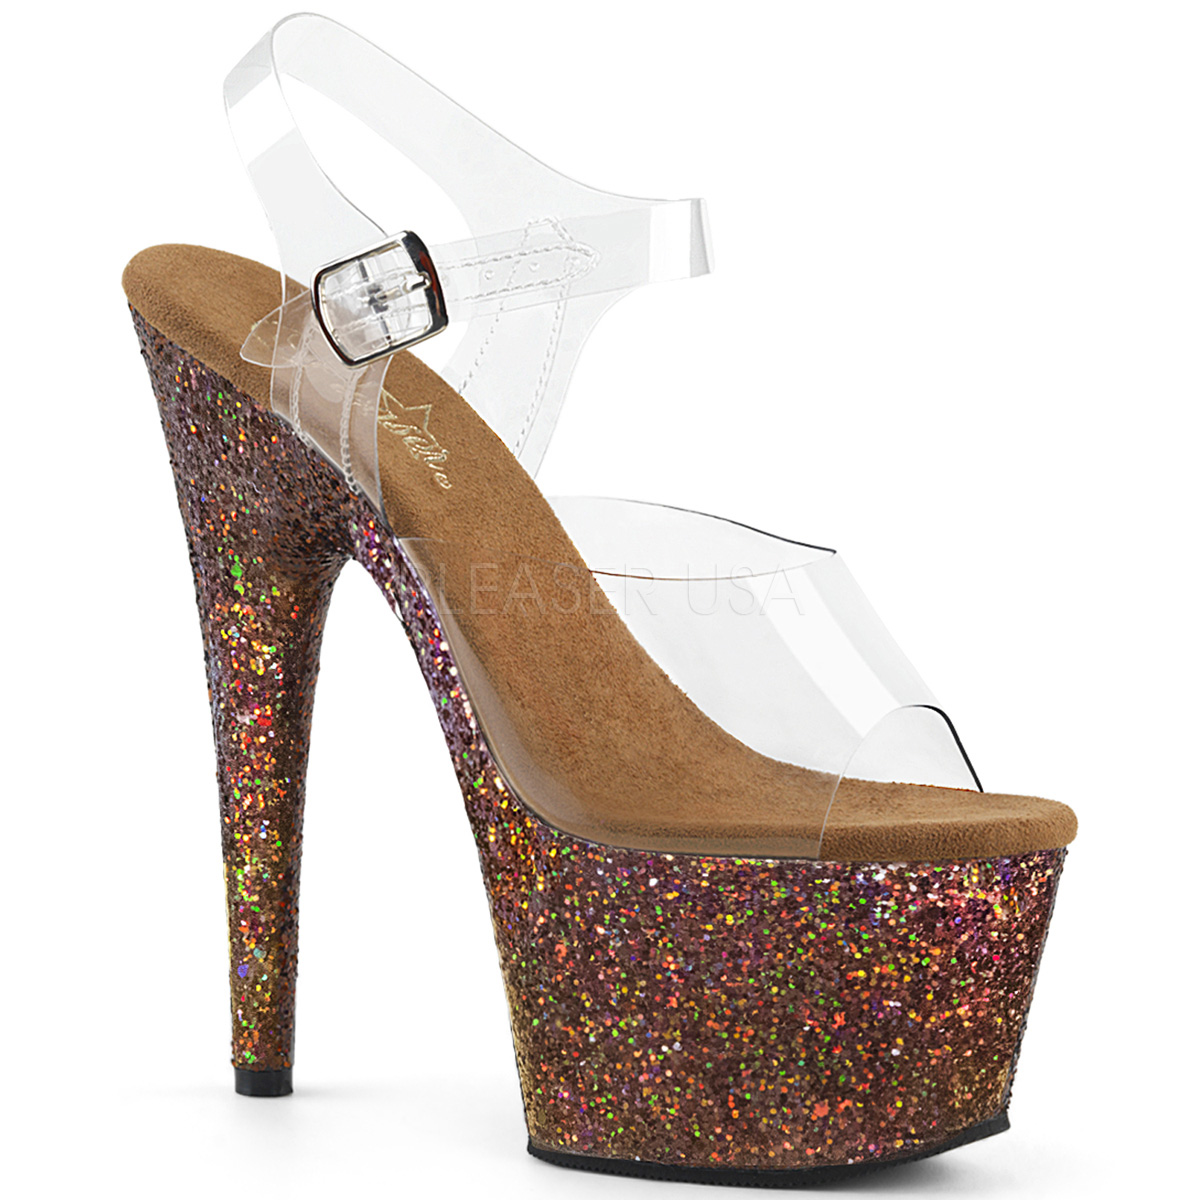 Pleaser ADORE-708LG Economical, stylish, and eye-catching shoes